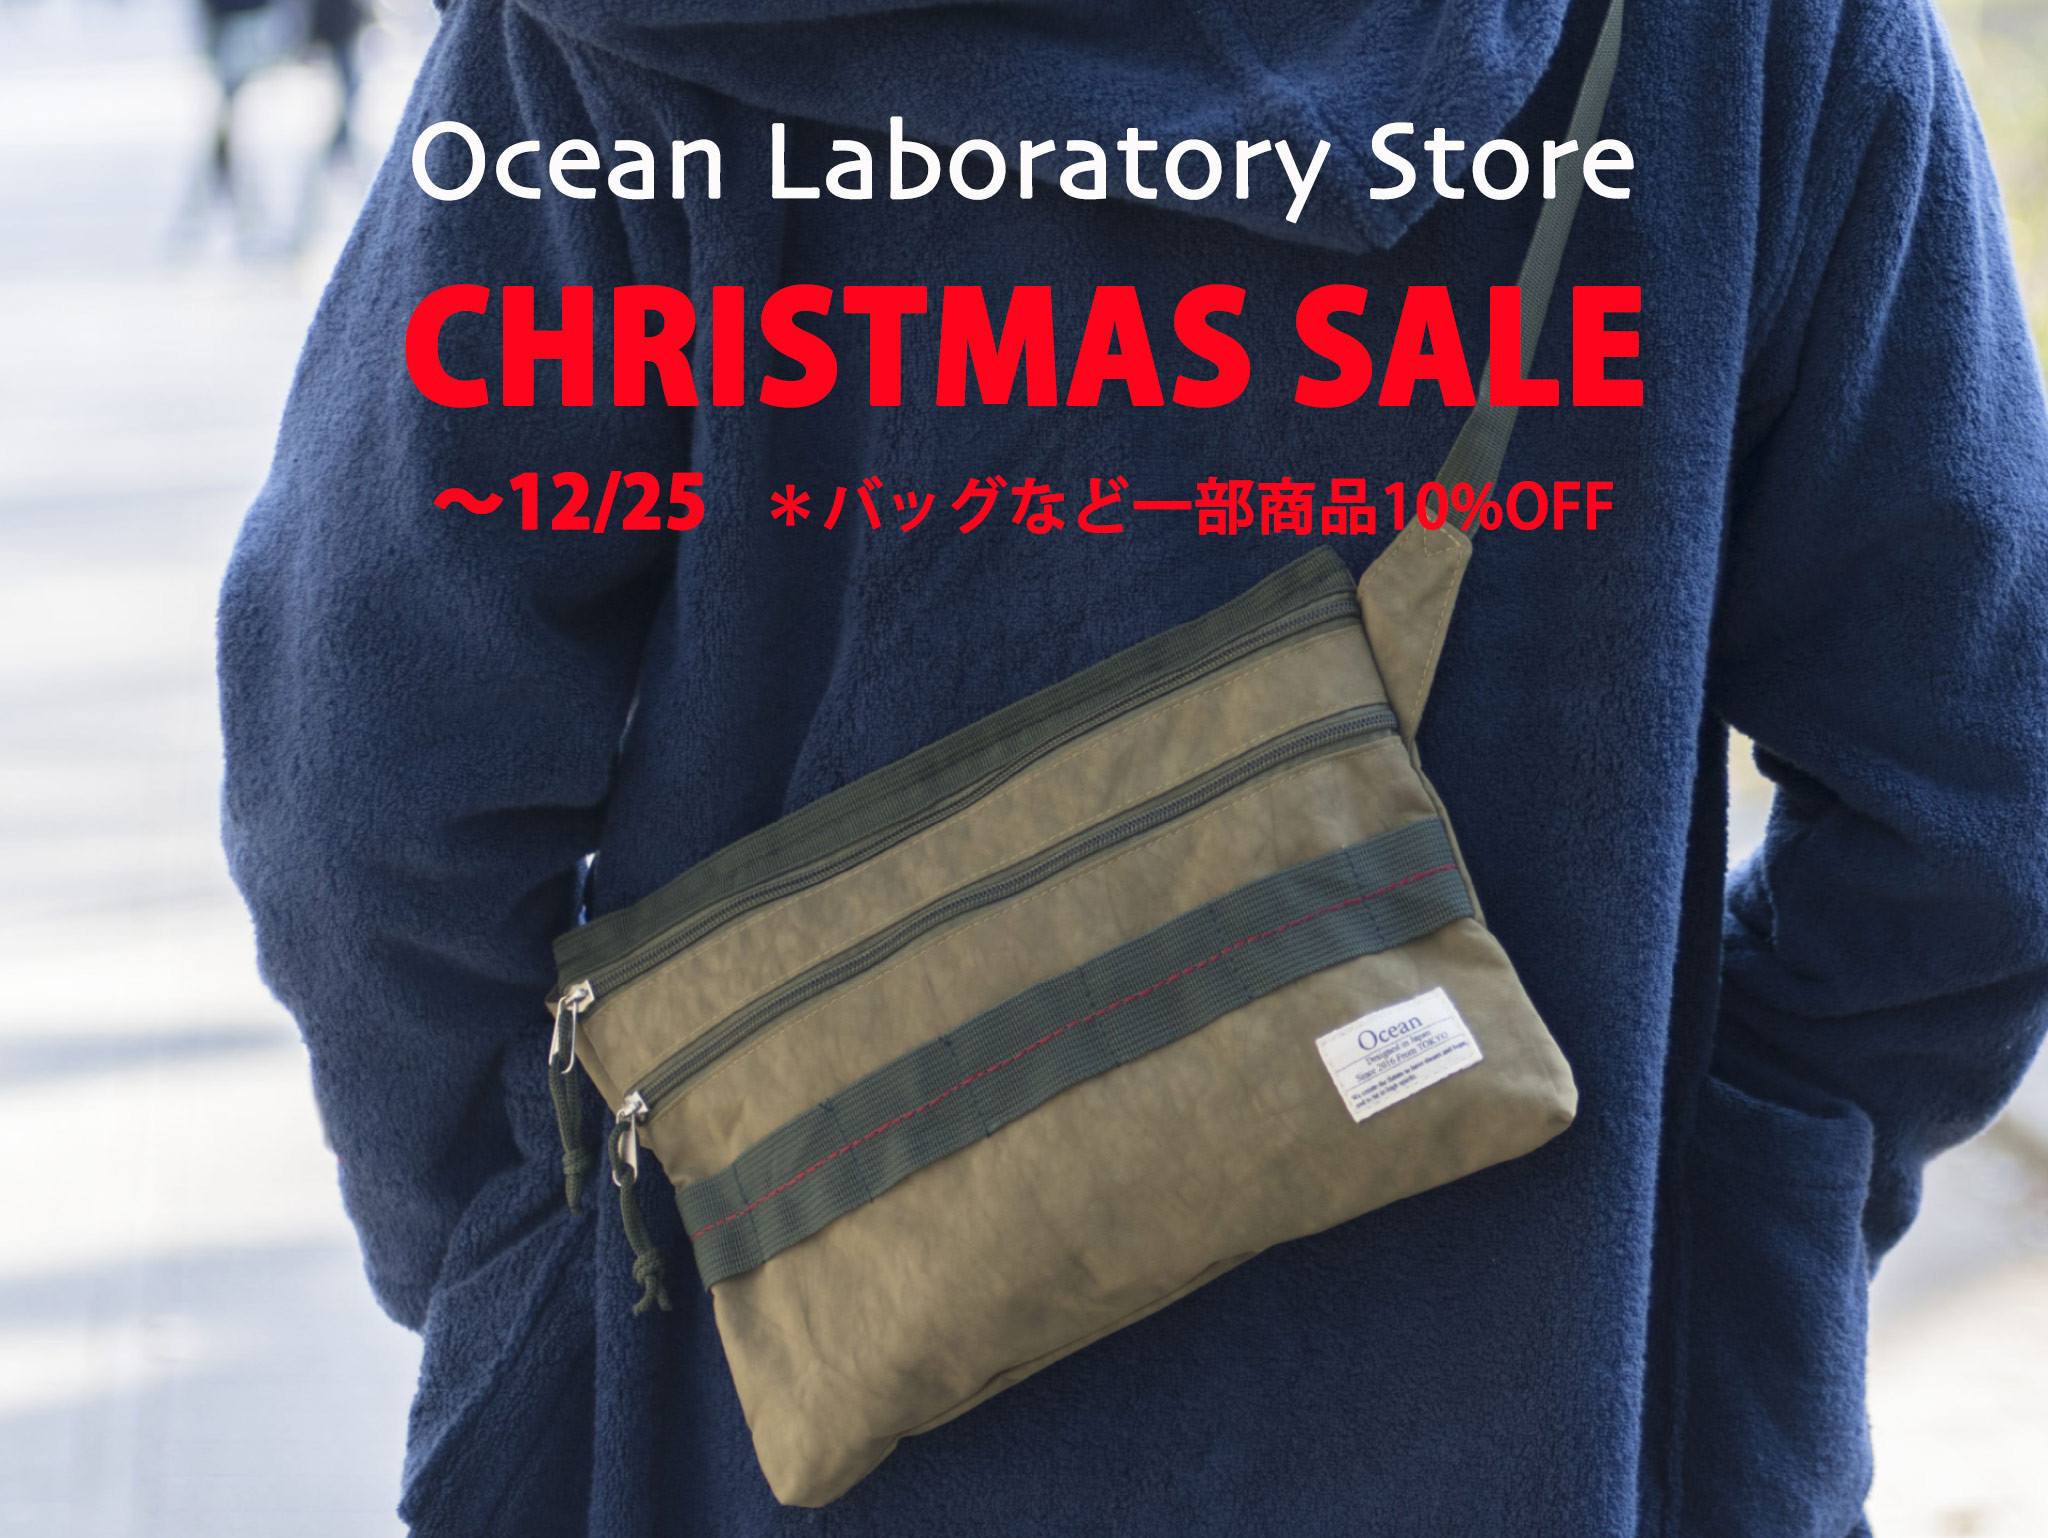 CHRISTMAS SALE !  12/25までバッグなど一部商品が10%オフ!